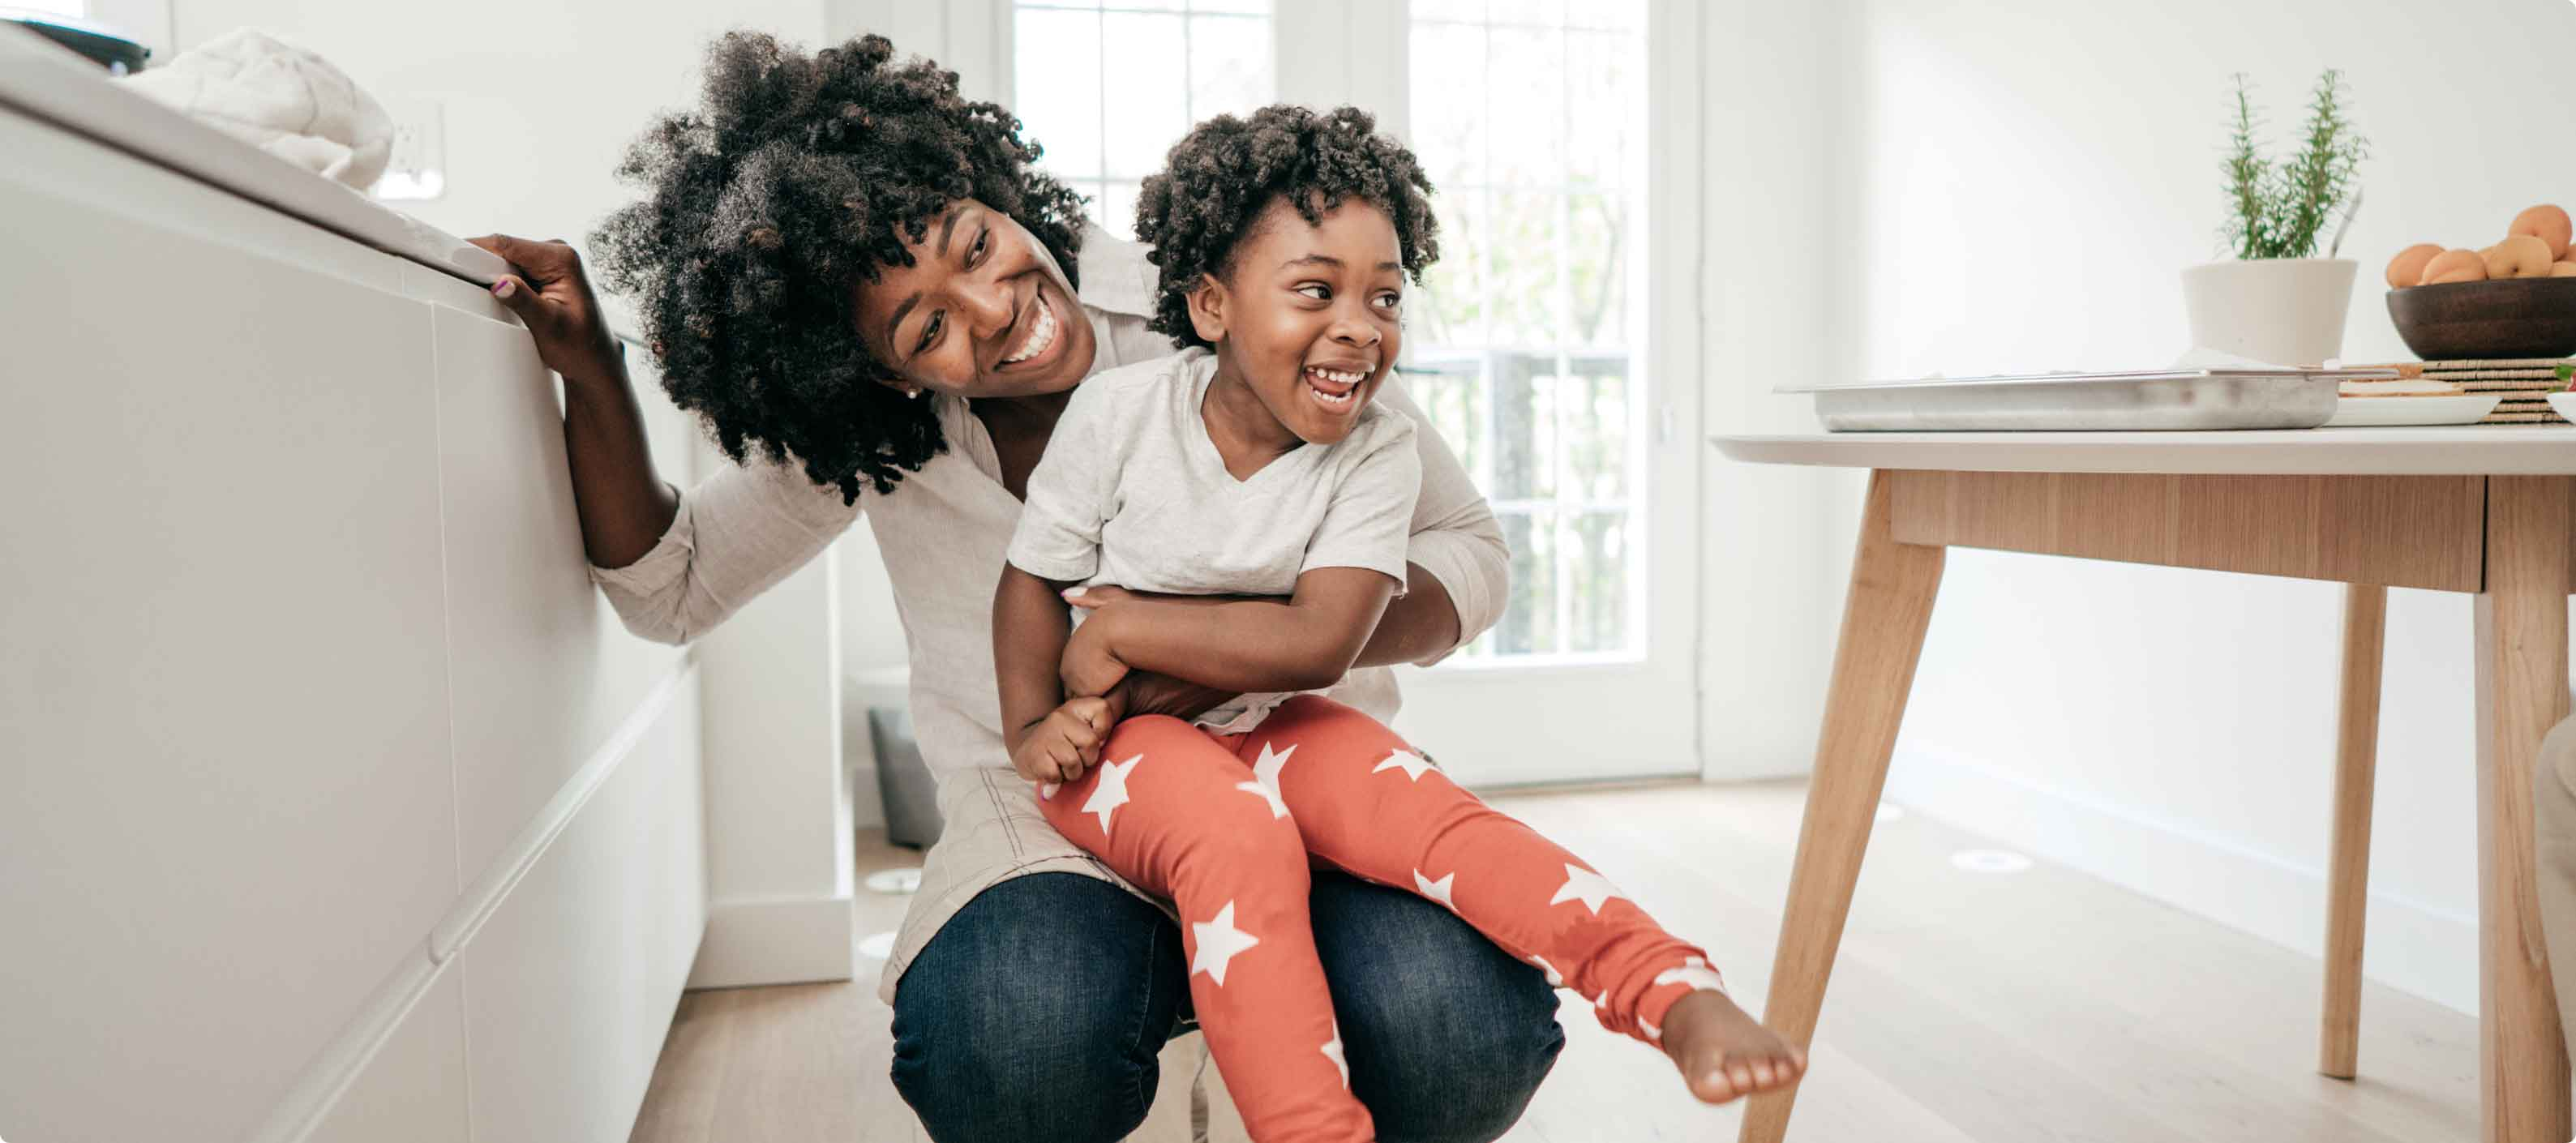 Affectionate African American mother and daughter playing